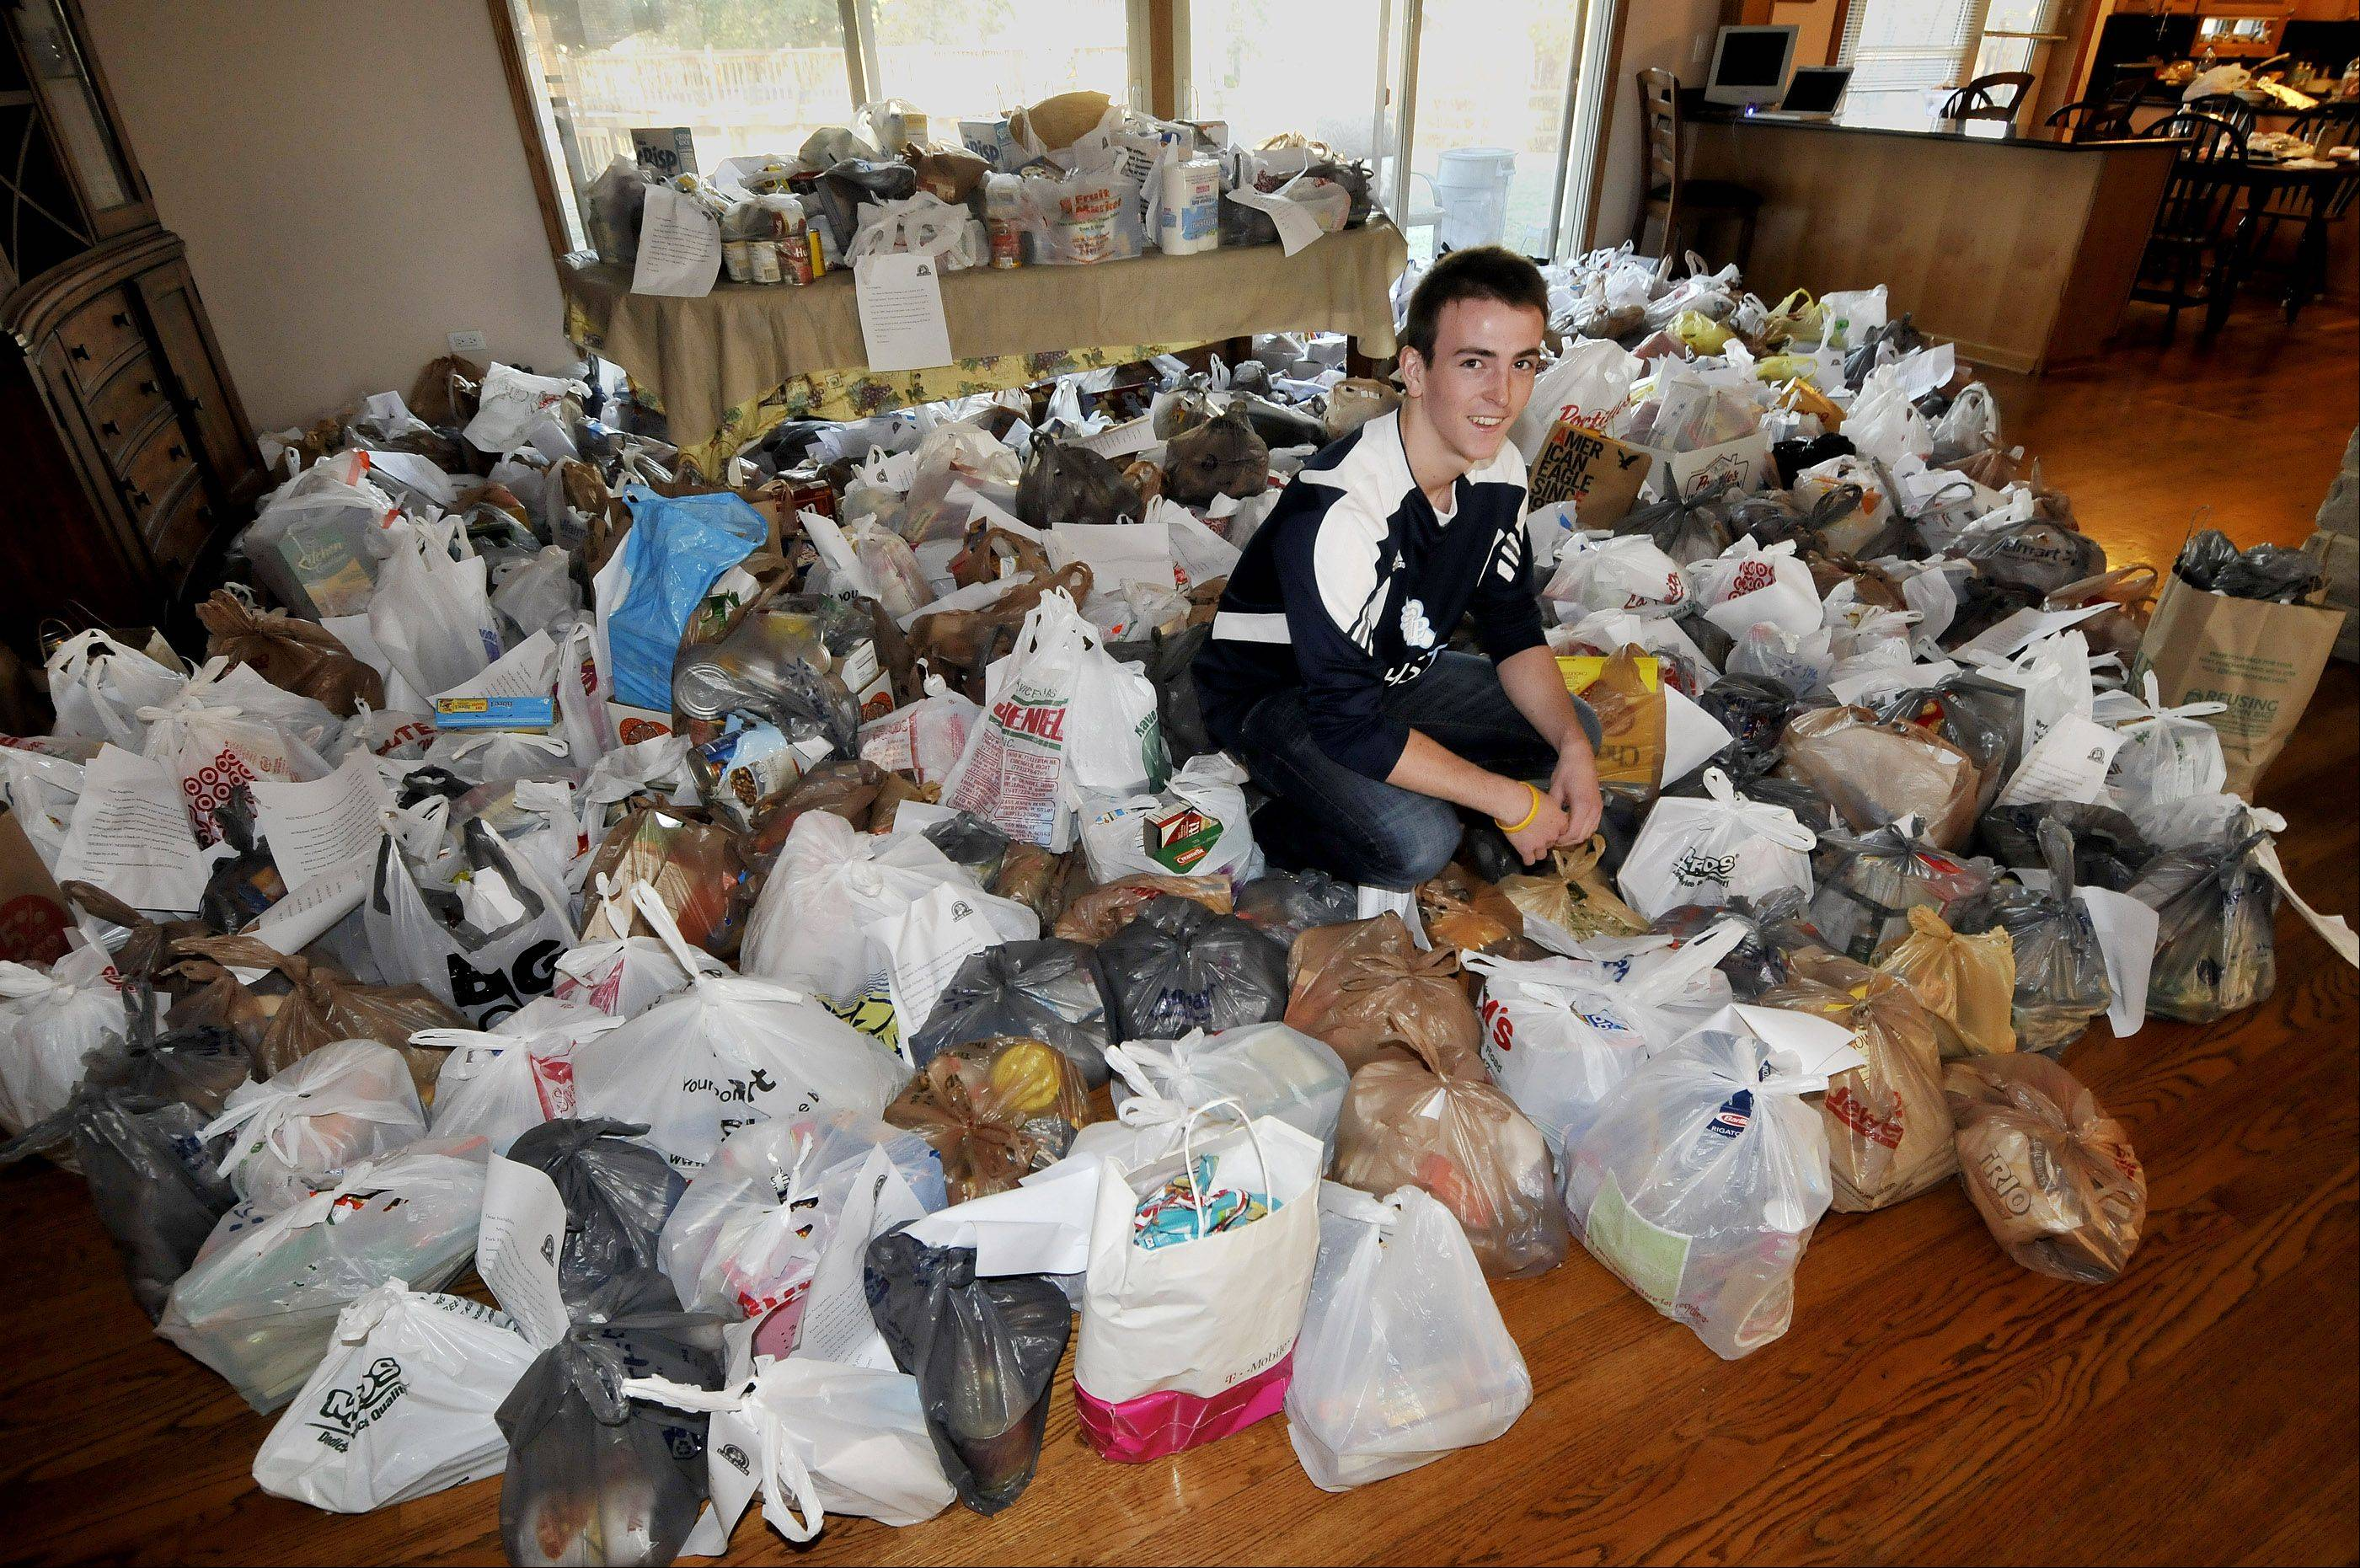 Michael Amerlan, 17, a senior at Lake Park High School in Roselle, has collected roughly 700 bags of food to help those in need.